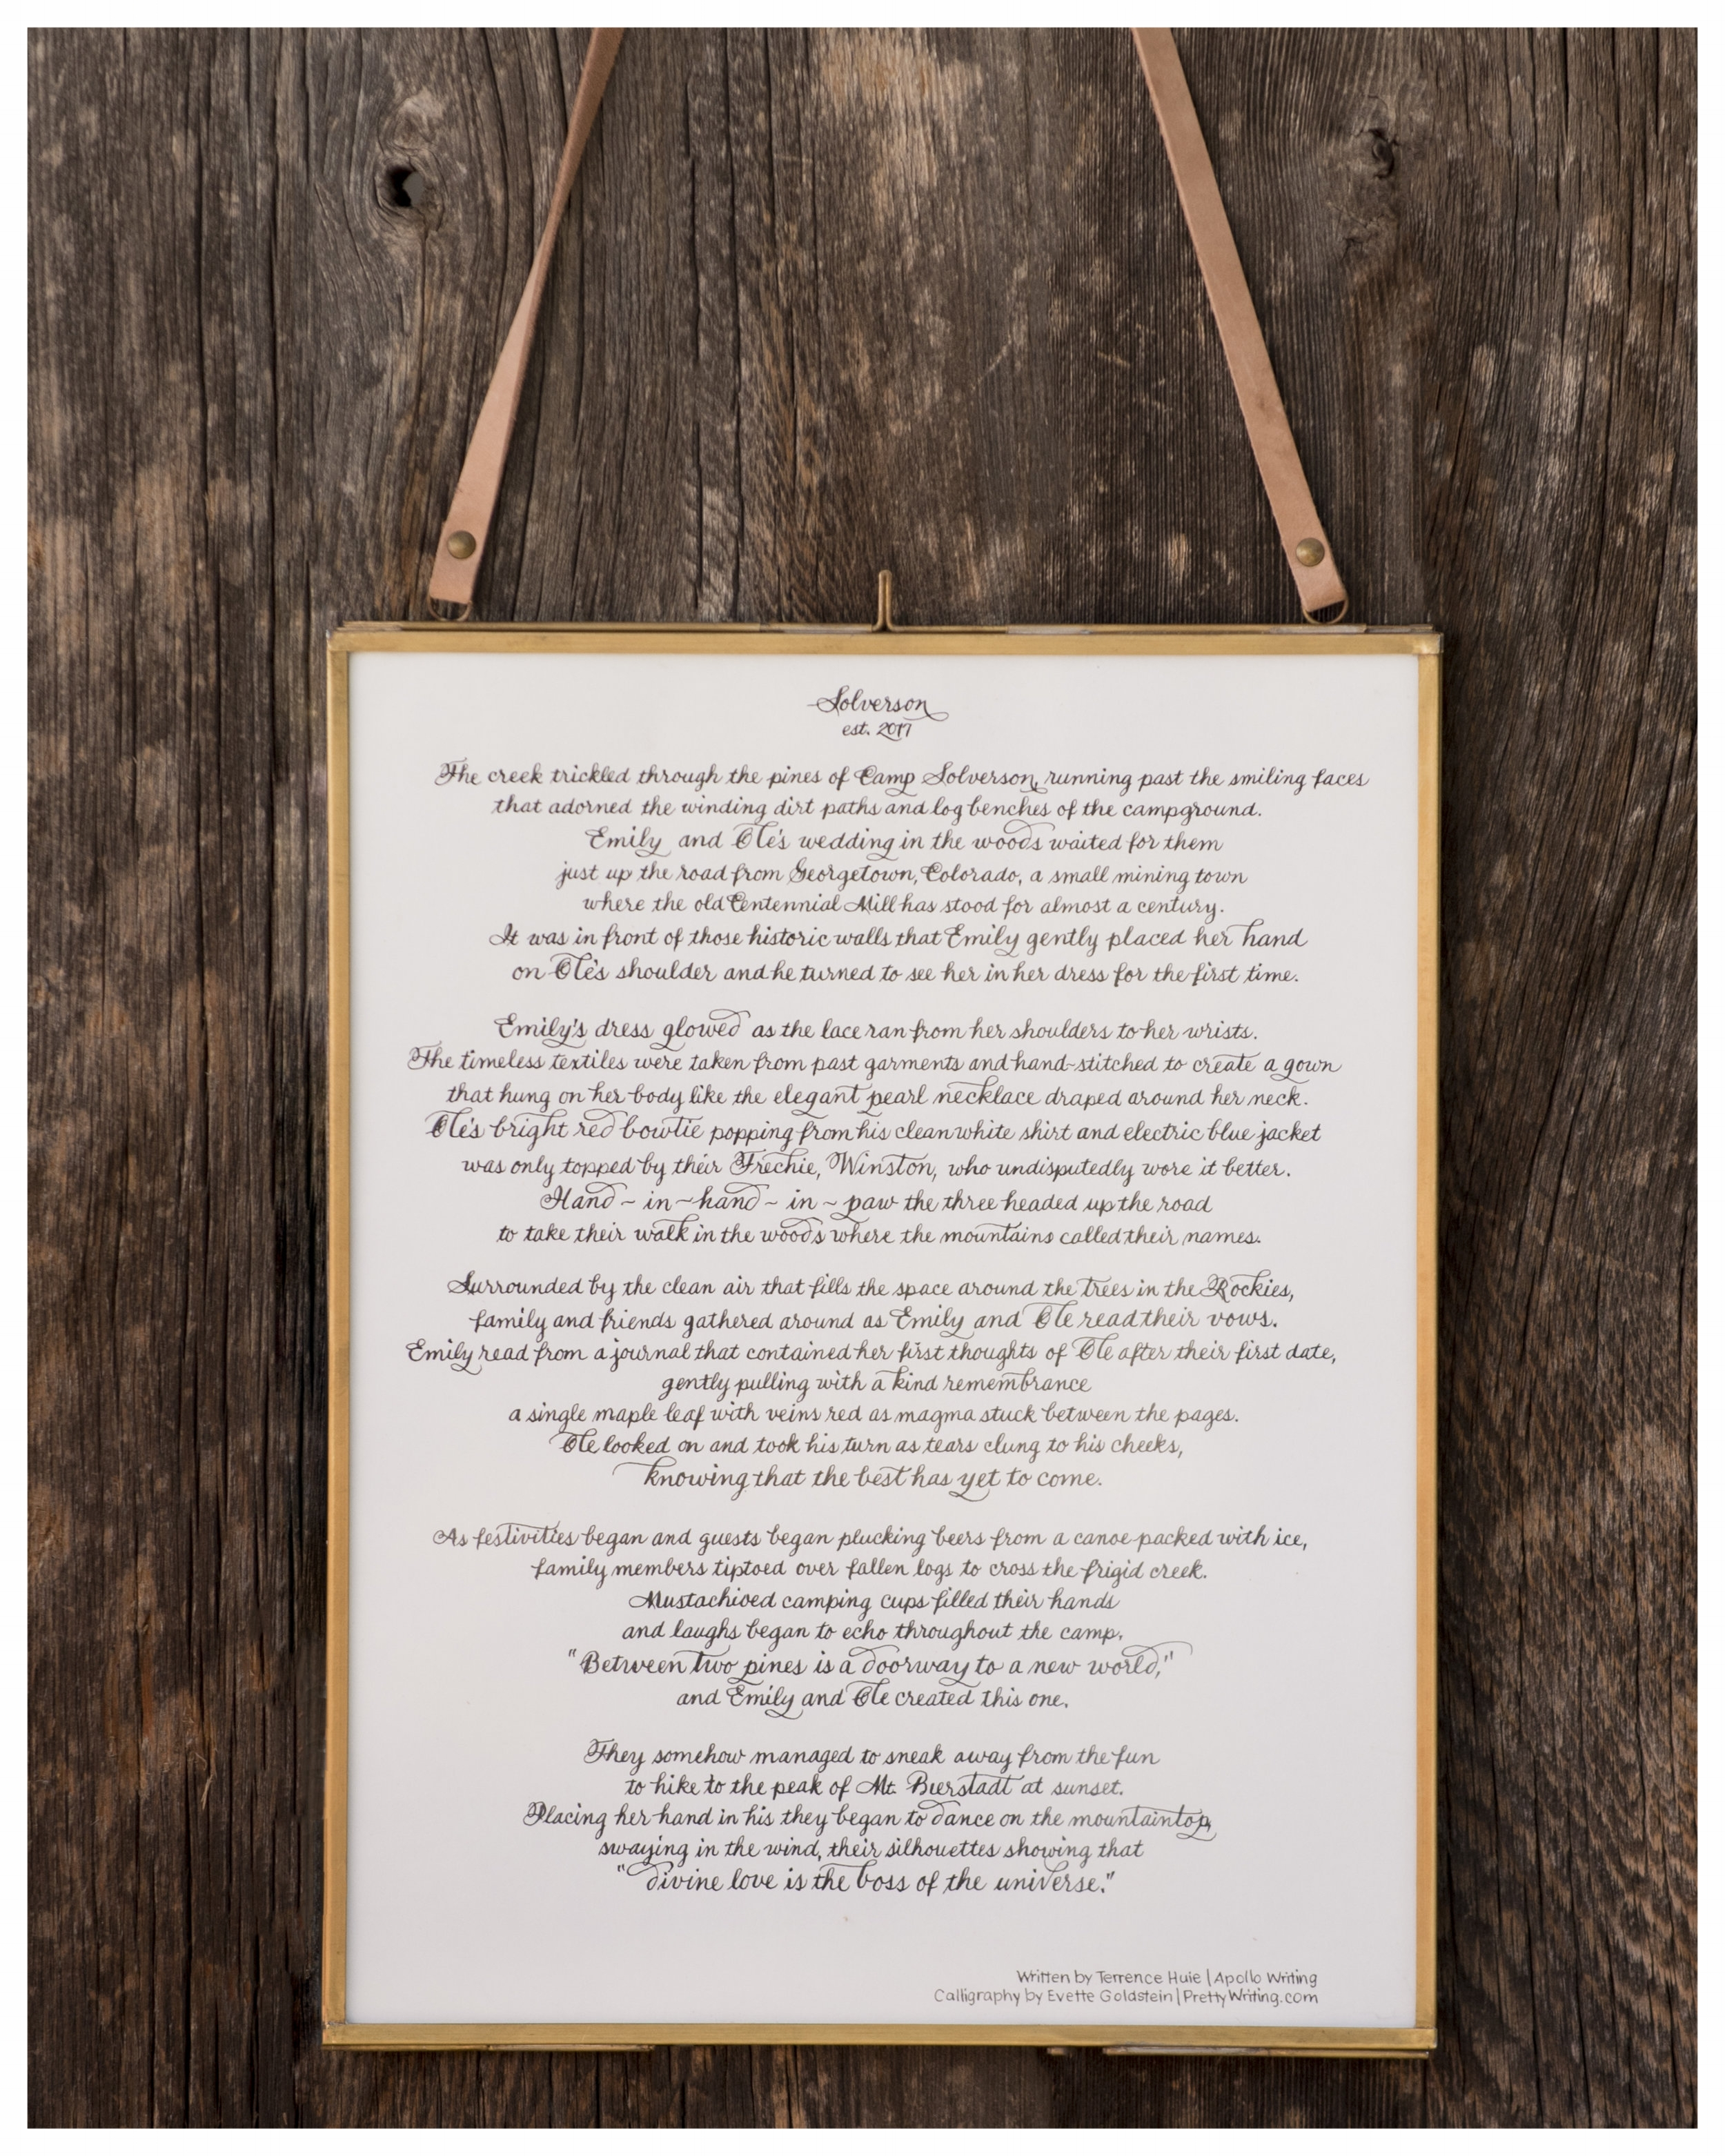 Calligraphy_Handmade_Keepsake_Wedding_Gift_Ideas_Handwriting.jpg